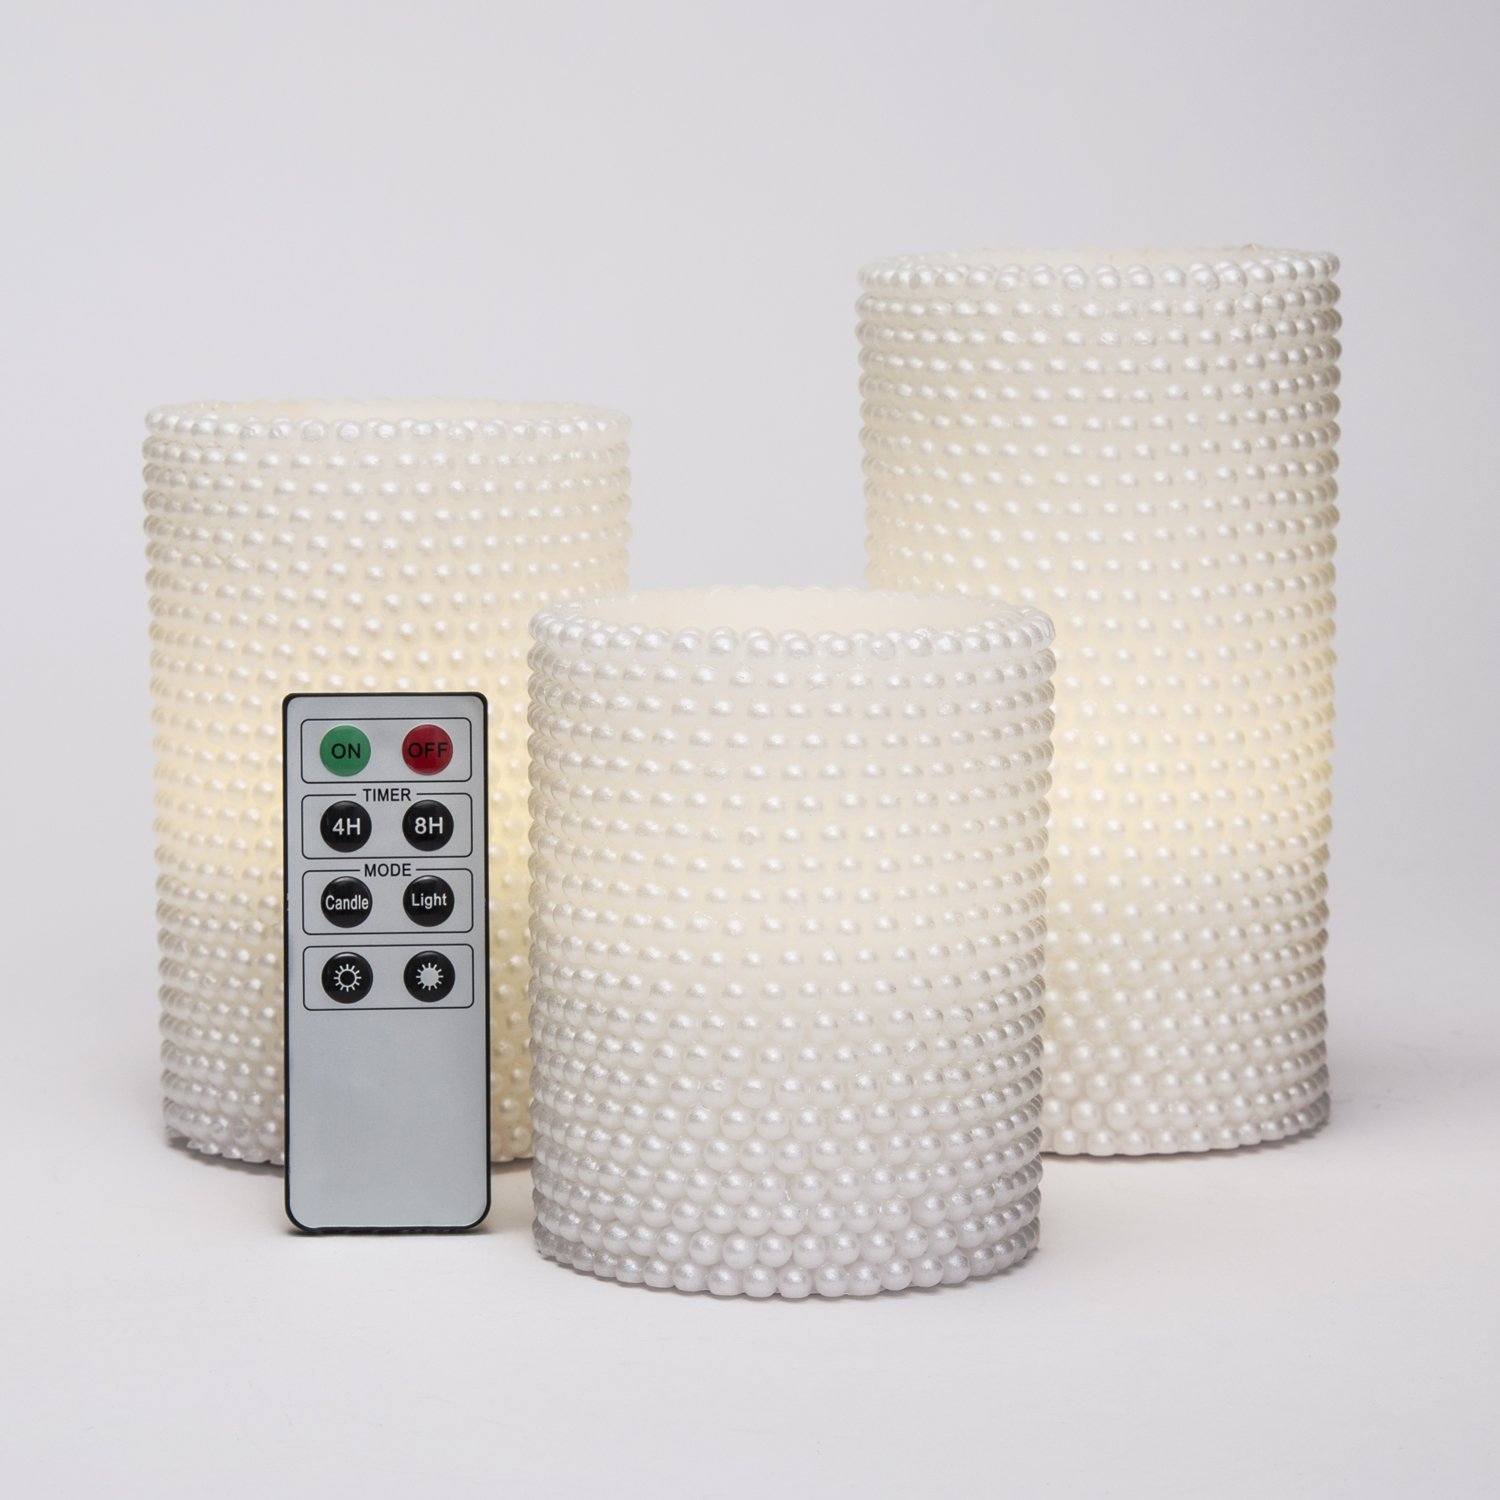 Decorative Textured Flameless Candles Set with Remote, Flickering Pearl Candle by LampLust, 4/8 Hr Timer, Real Wax, White LED Glow, Indoor use - Set of 3 by LampLust (Image #2)